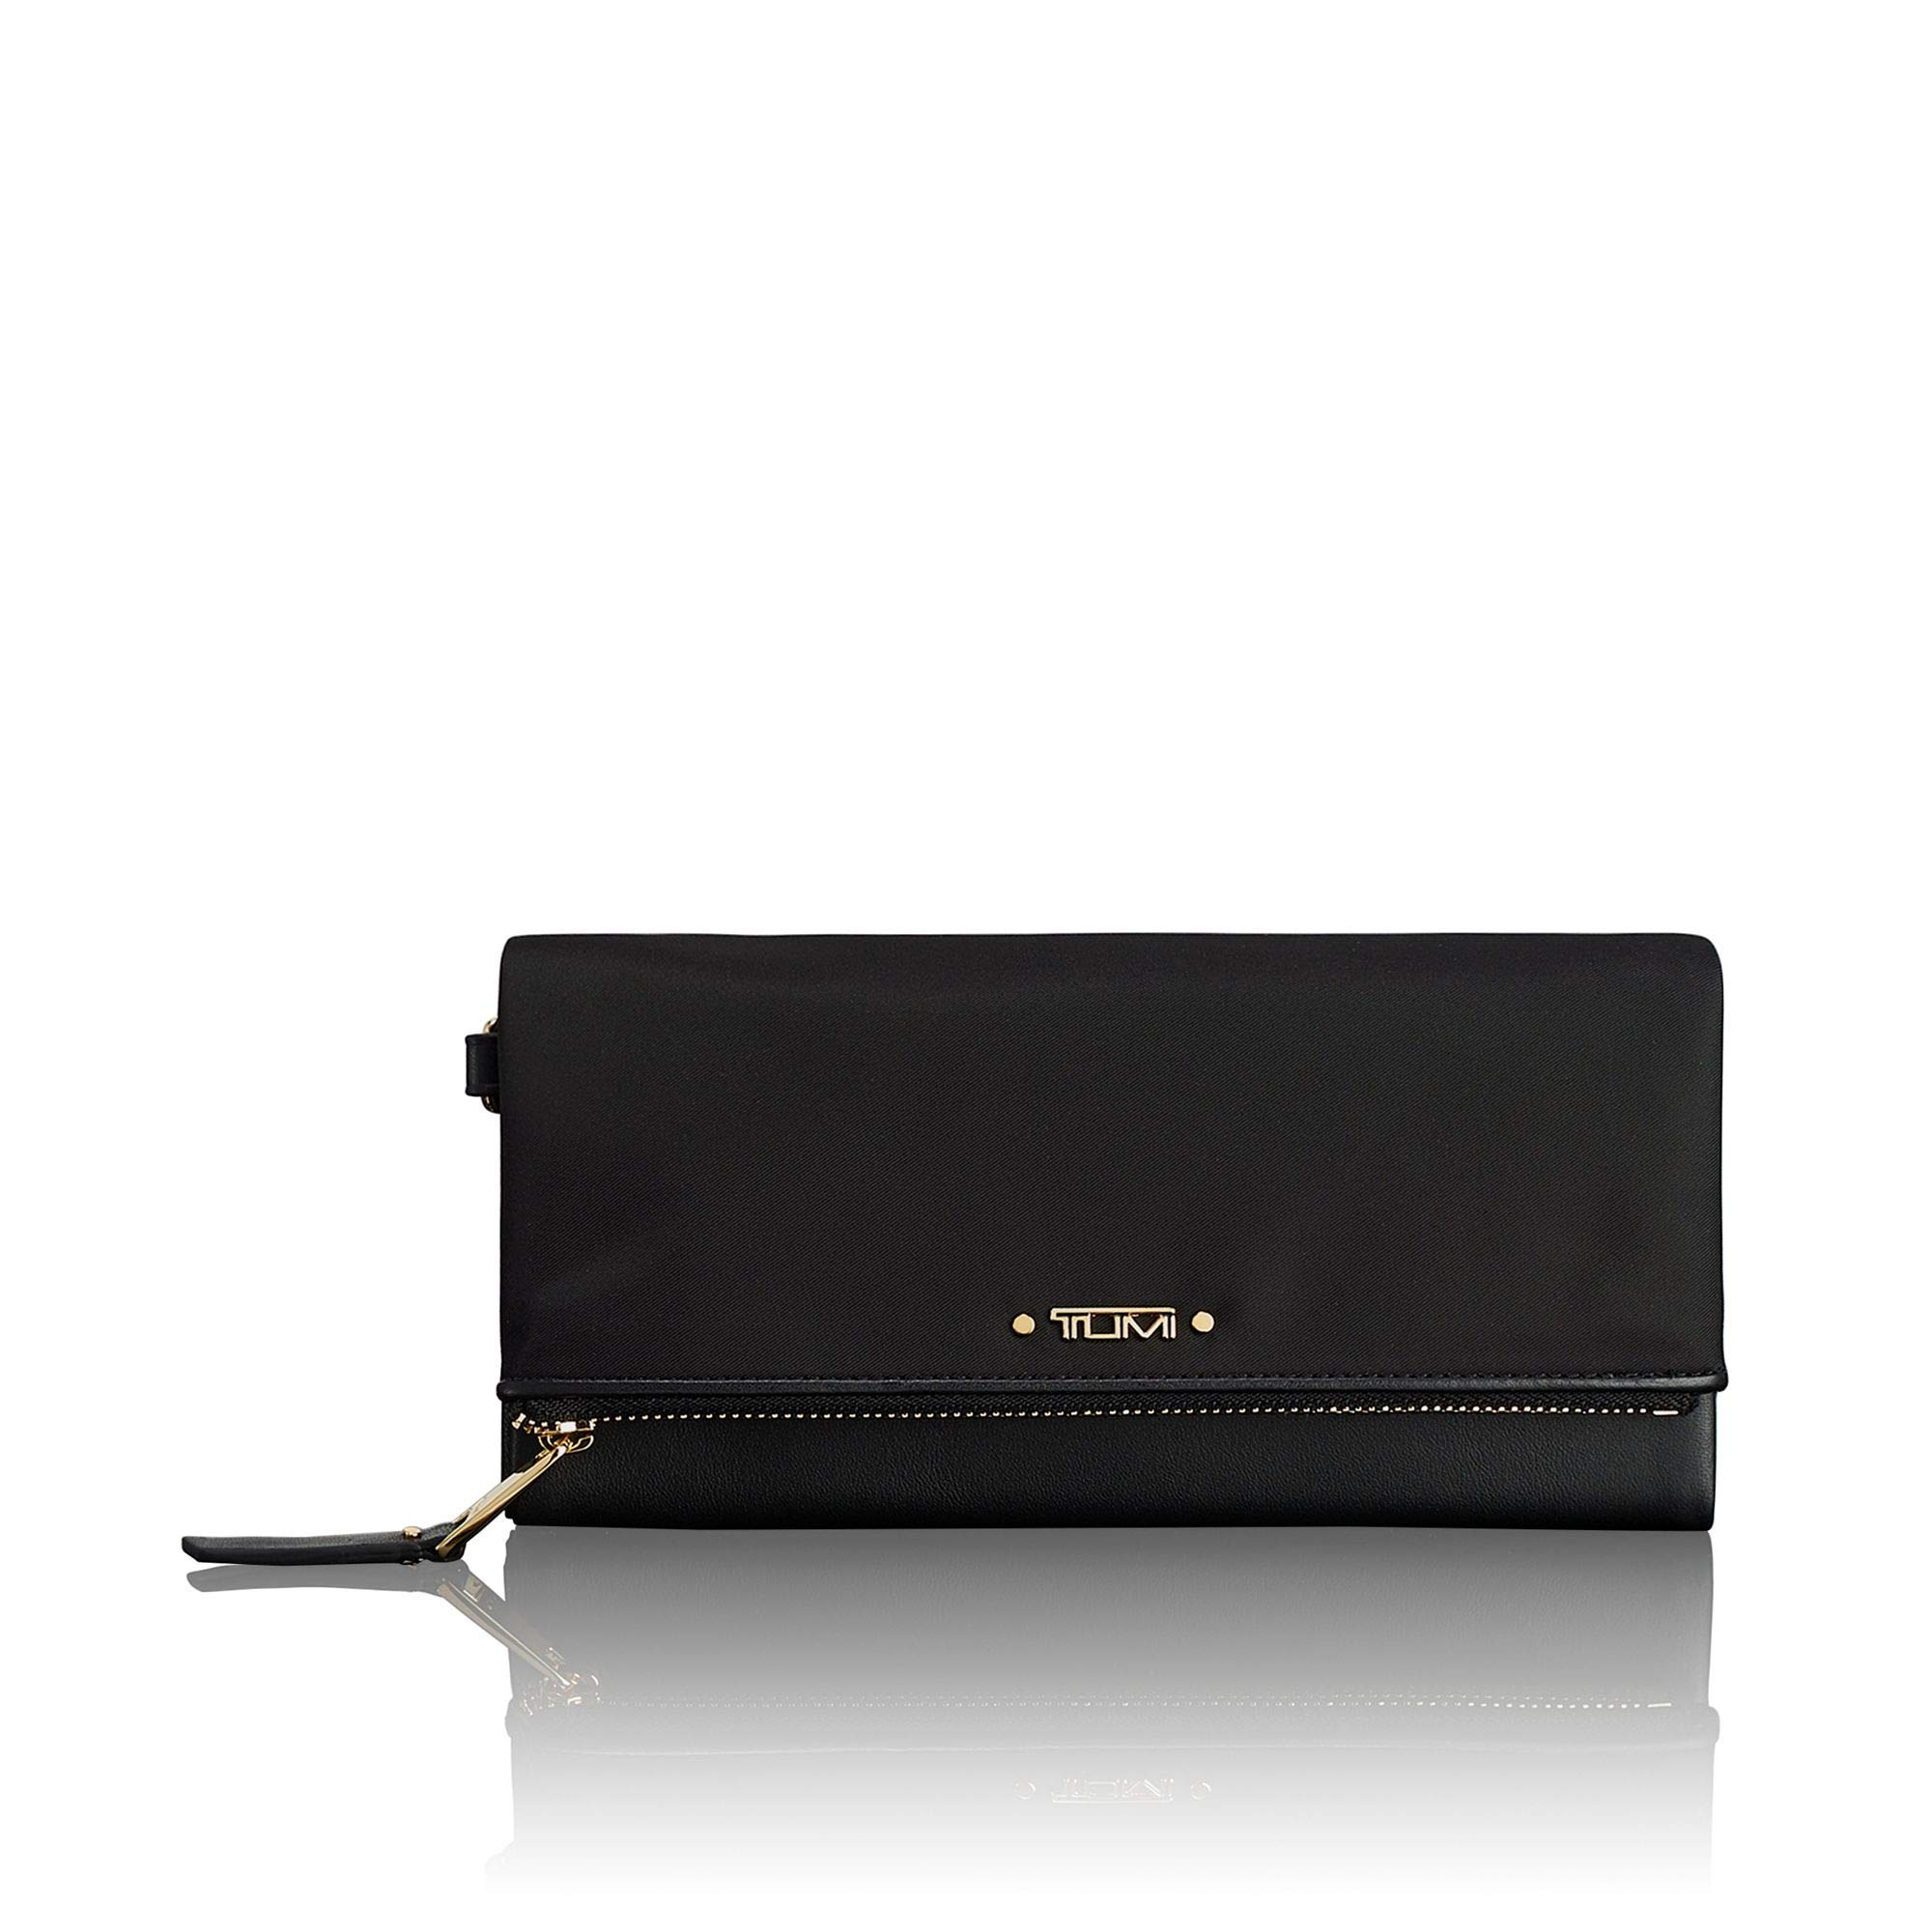 TUMI - Voyageur Flap Continental Wallet - Card Holder for Women - Black by TUMI